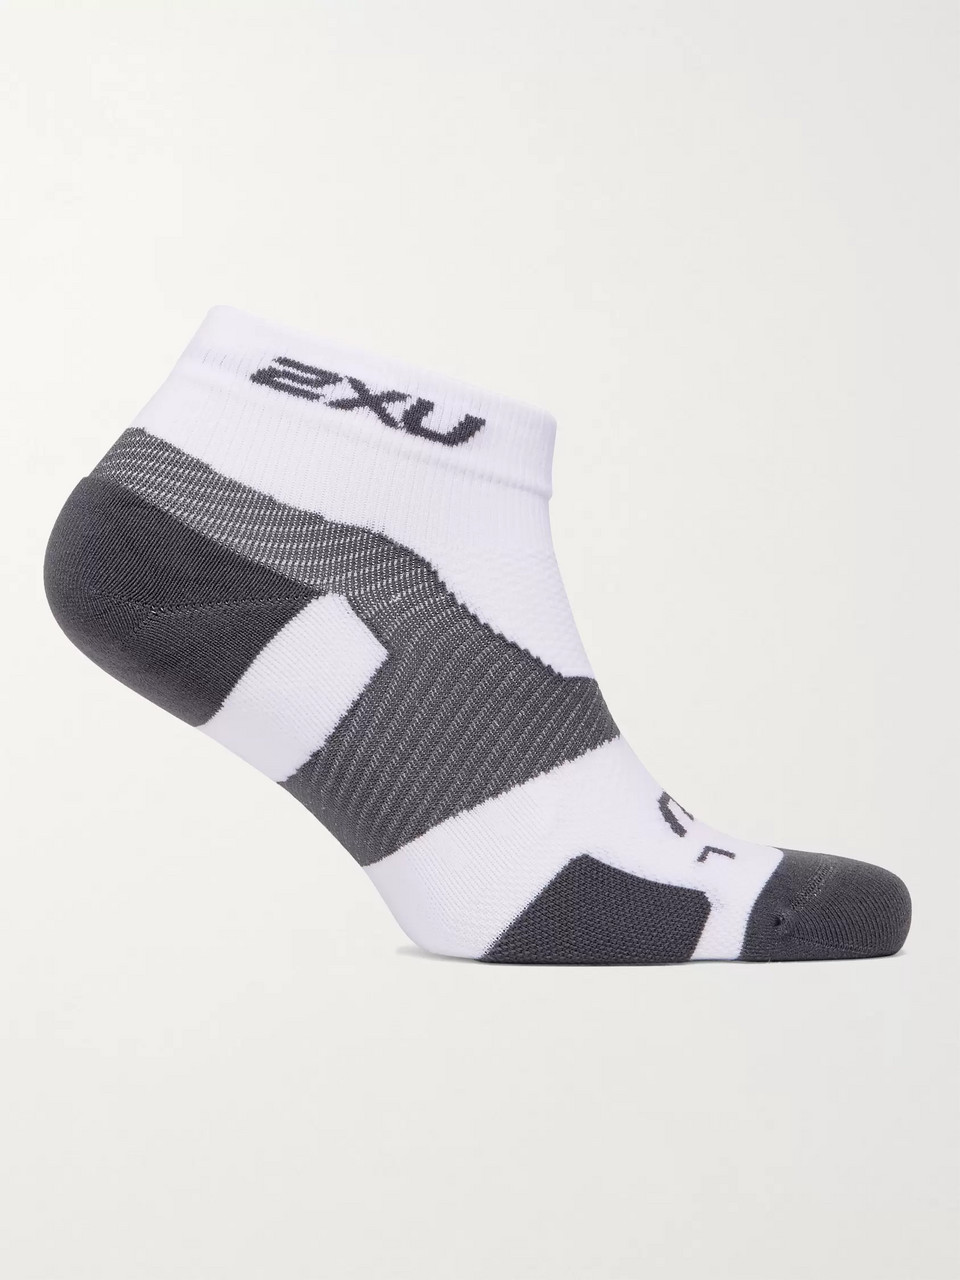 2XU Vectr Stretch-Knit Socks